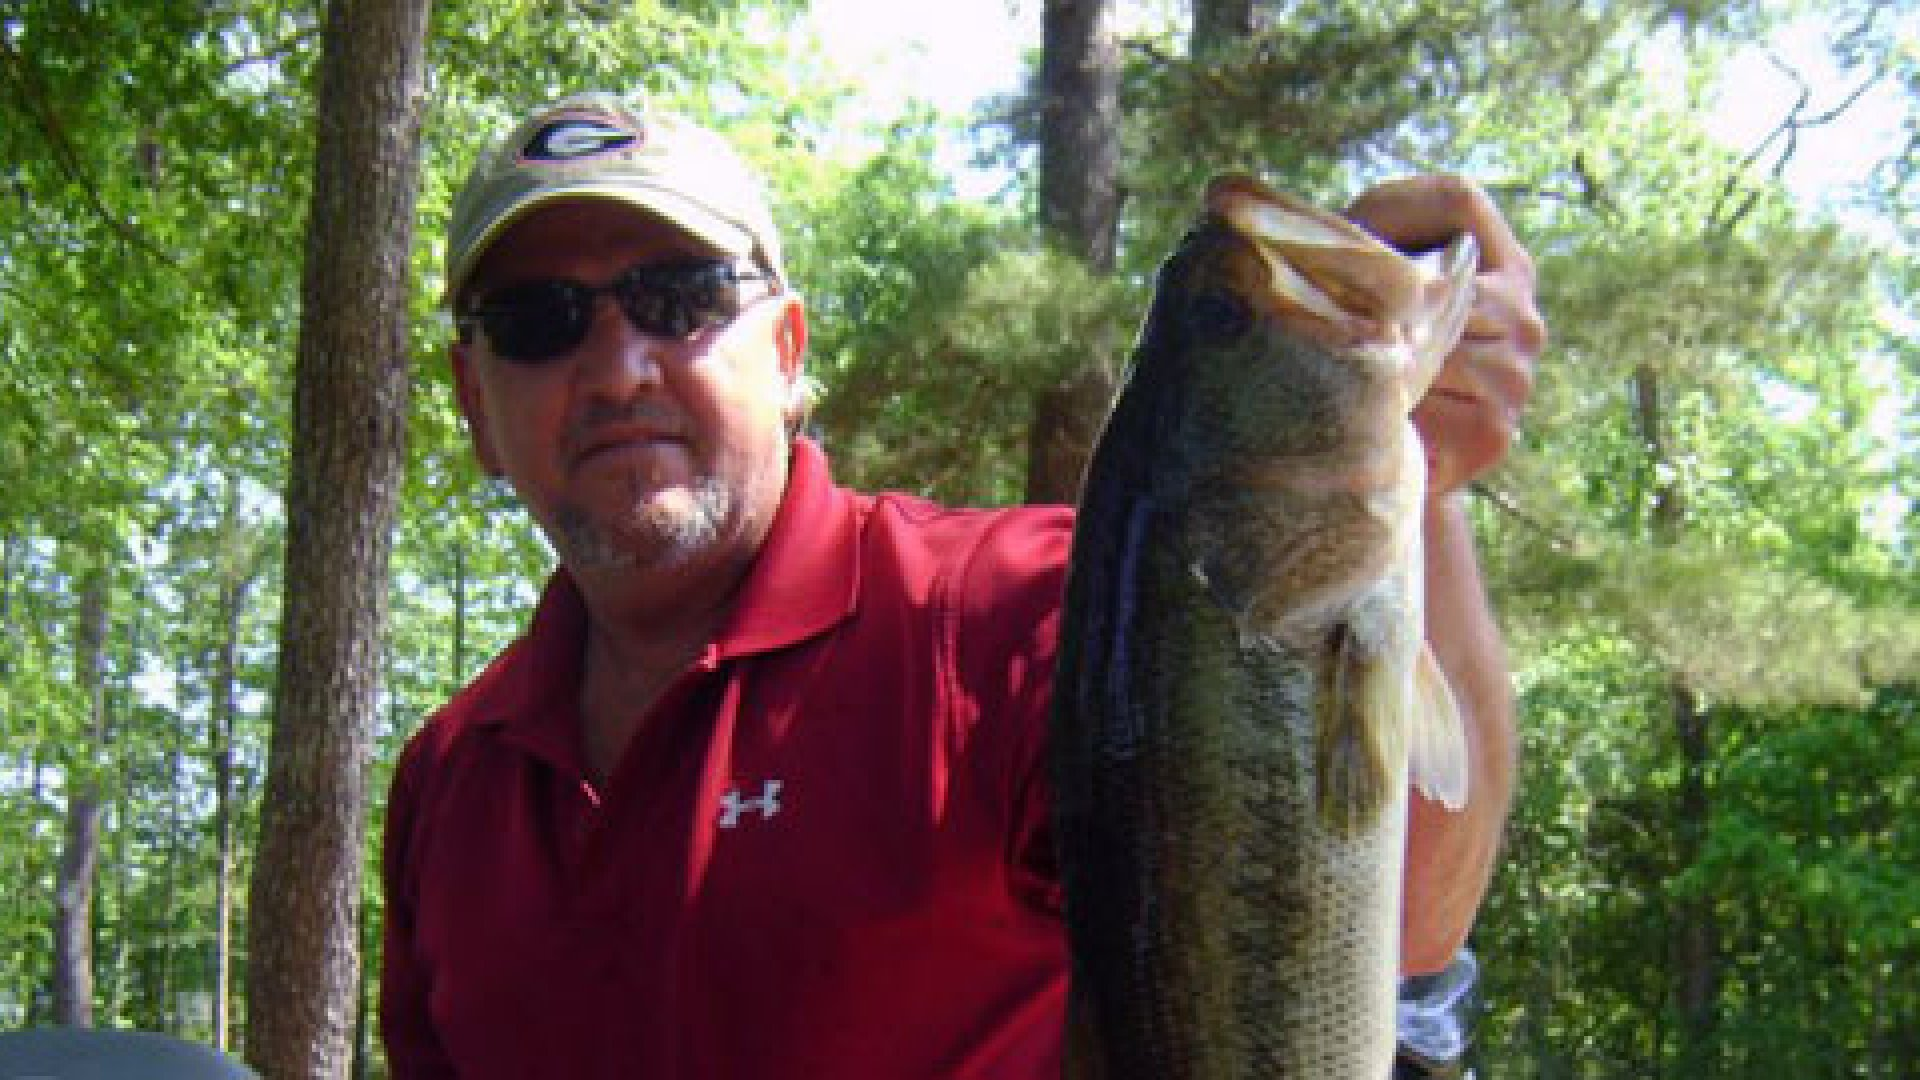 Electric motors specialist Ed Tidman won Southern Rewinding's annual bass tournament this April, benefiting a local wildlife foundation.